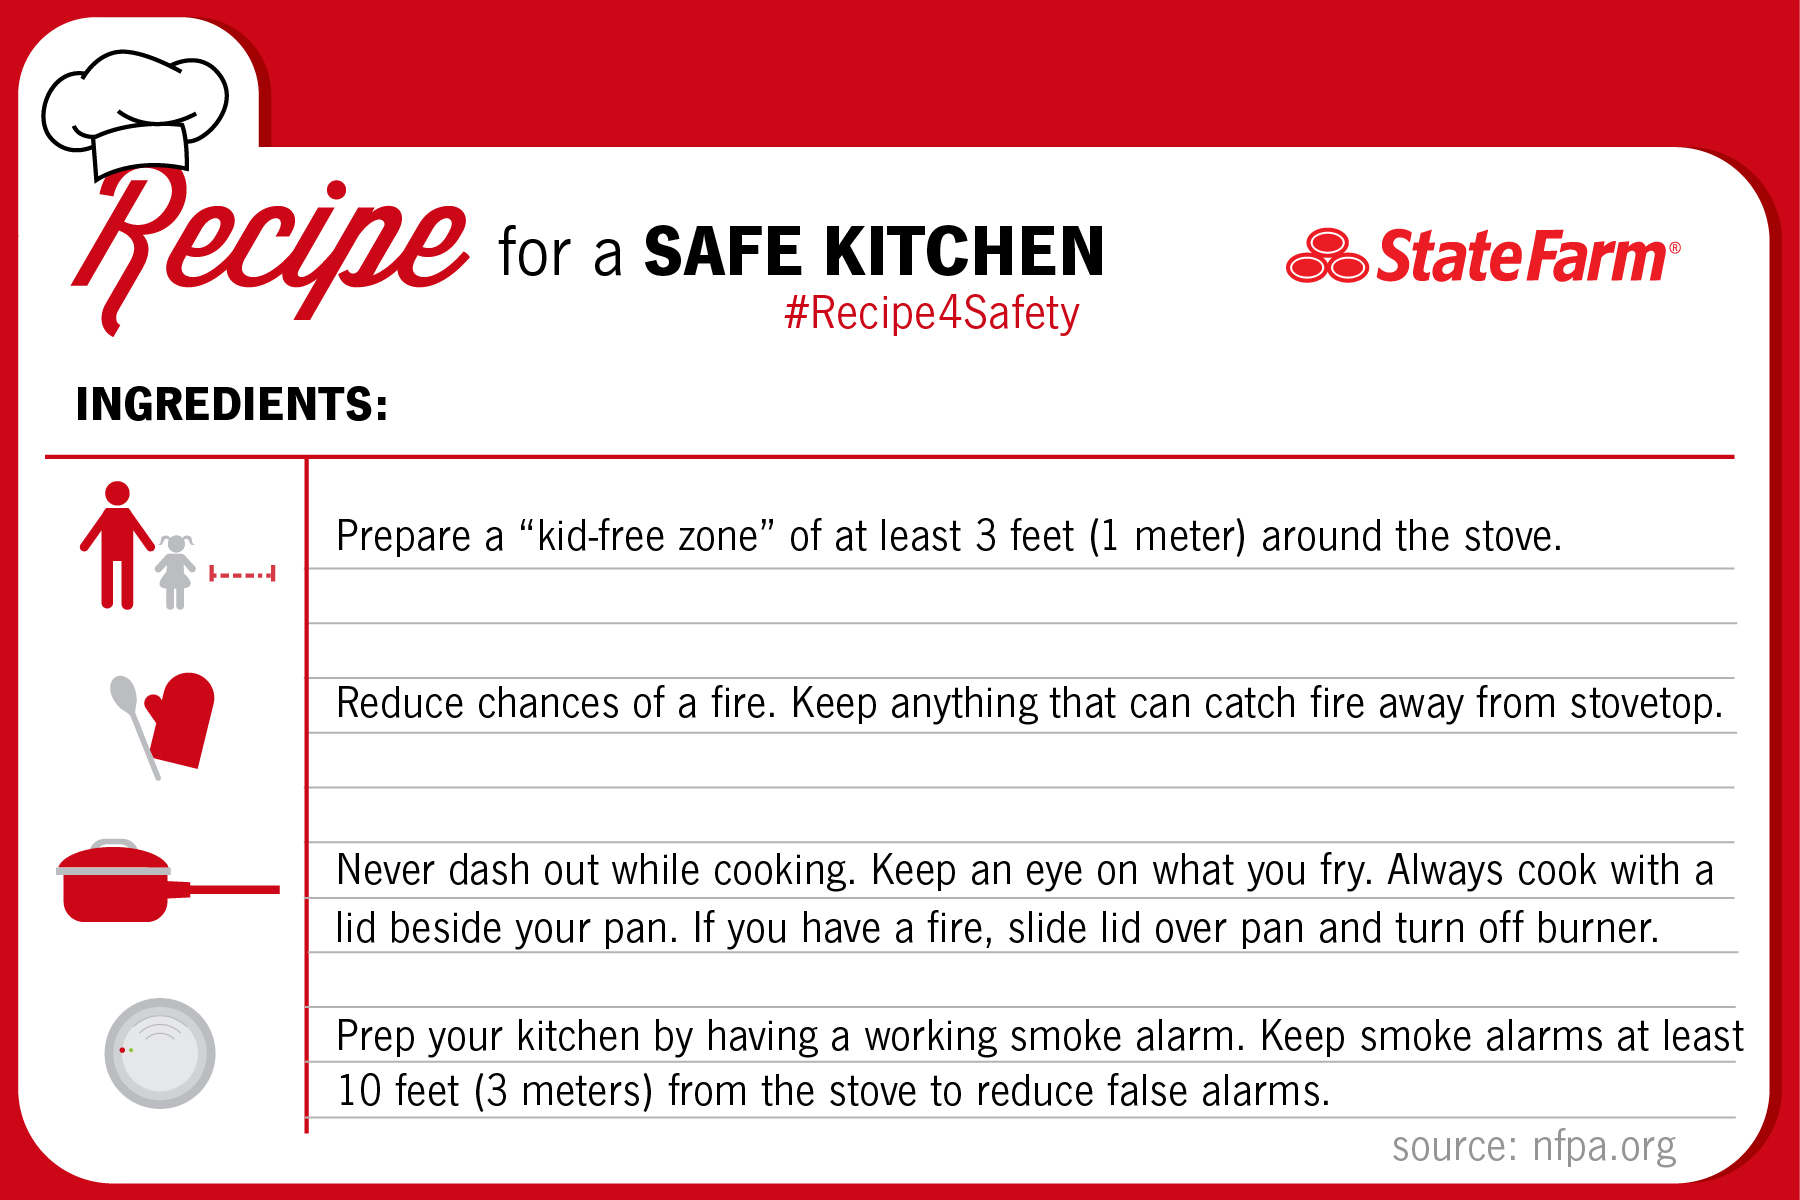 Recipe for a safe kitchen card